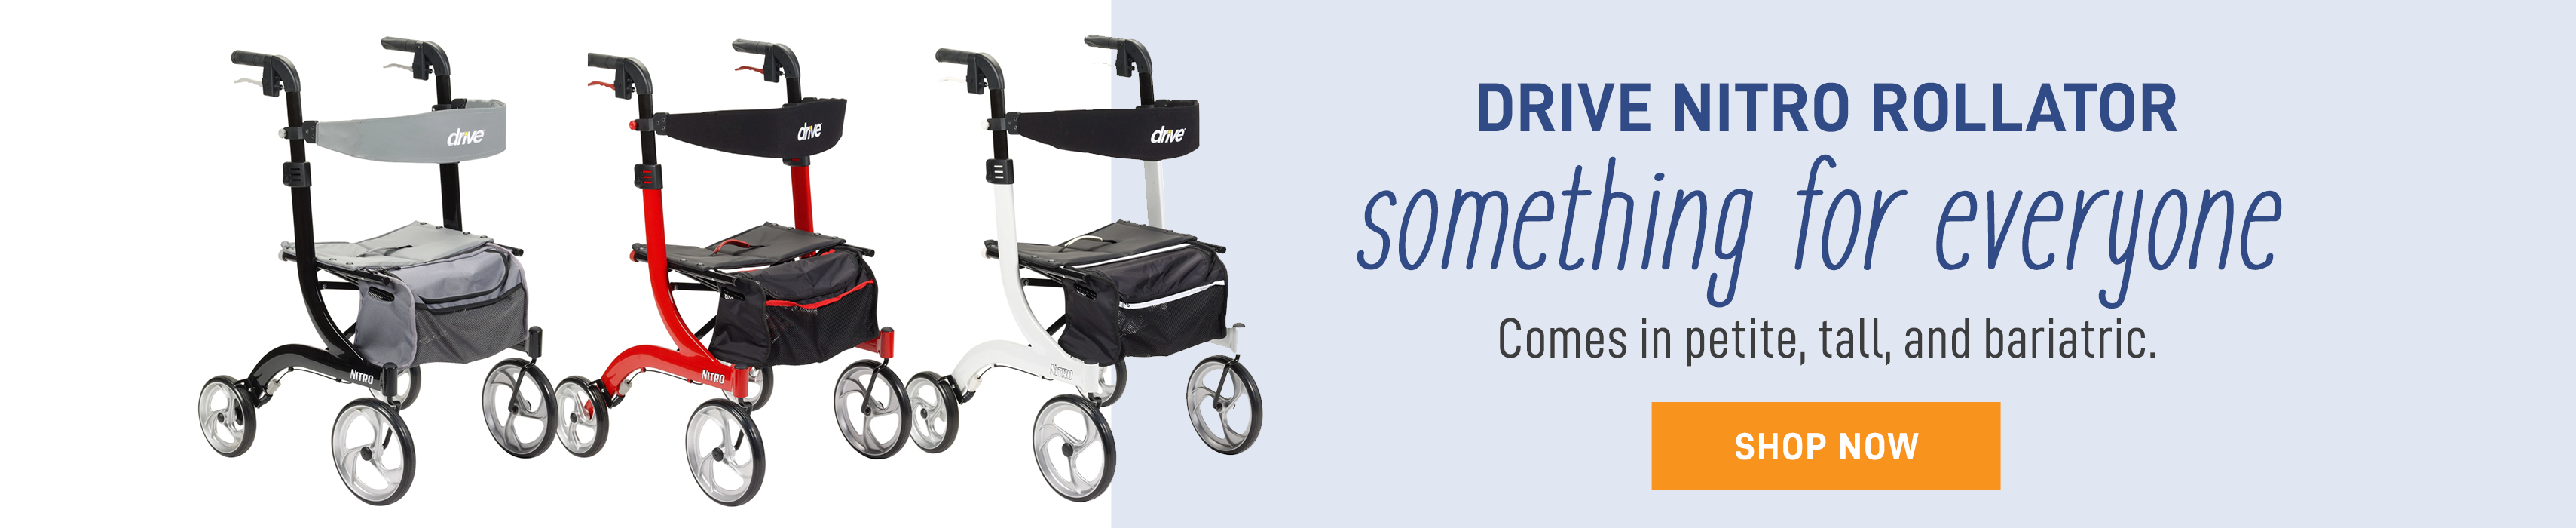 Nitro-a rollator for everyone!